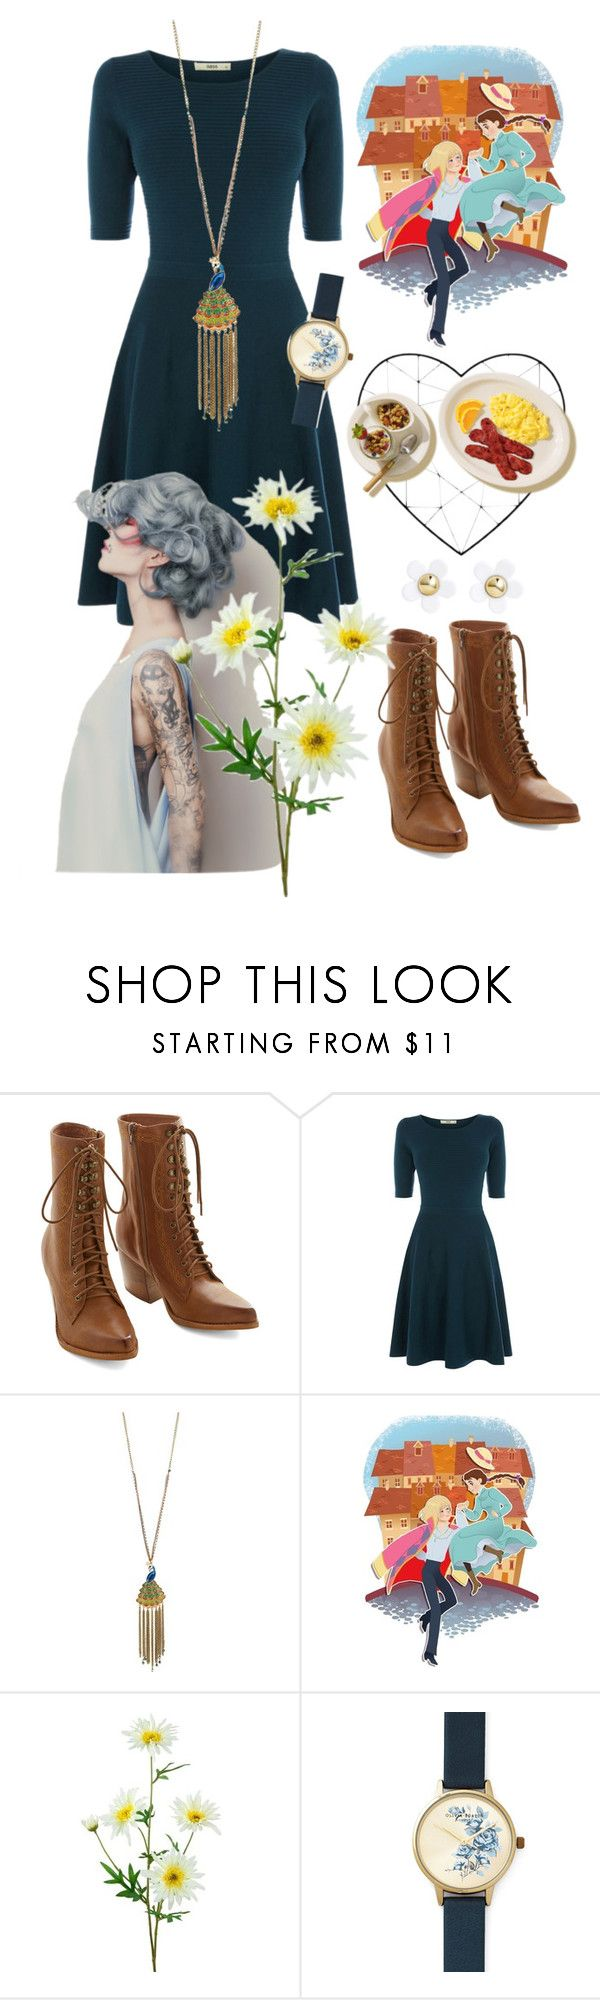 """""""Sophie <3"""" by thedailydornan ❤ liked on Polyvore featuring beauty, Jeffrey Campbell, Oasis, Betsey Johnson, Olivia Burton and H&M"""